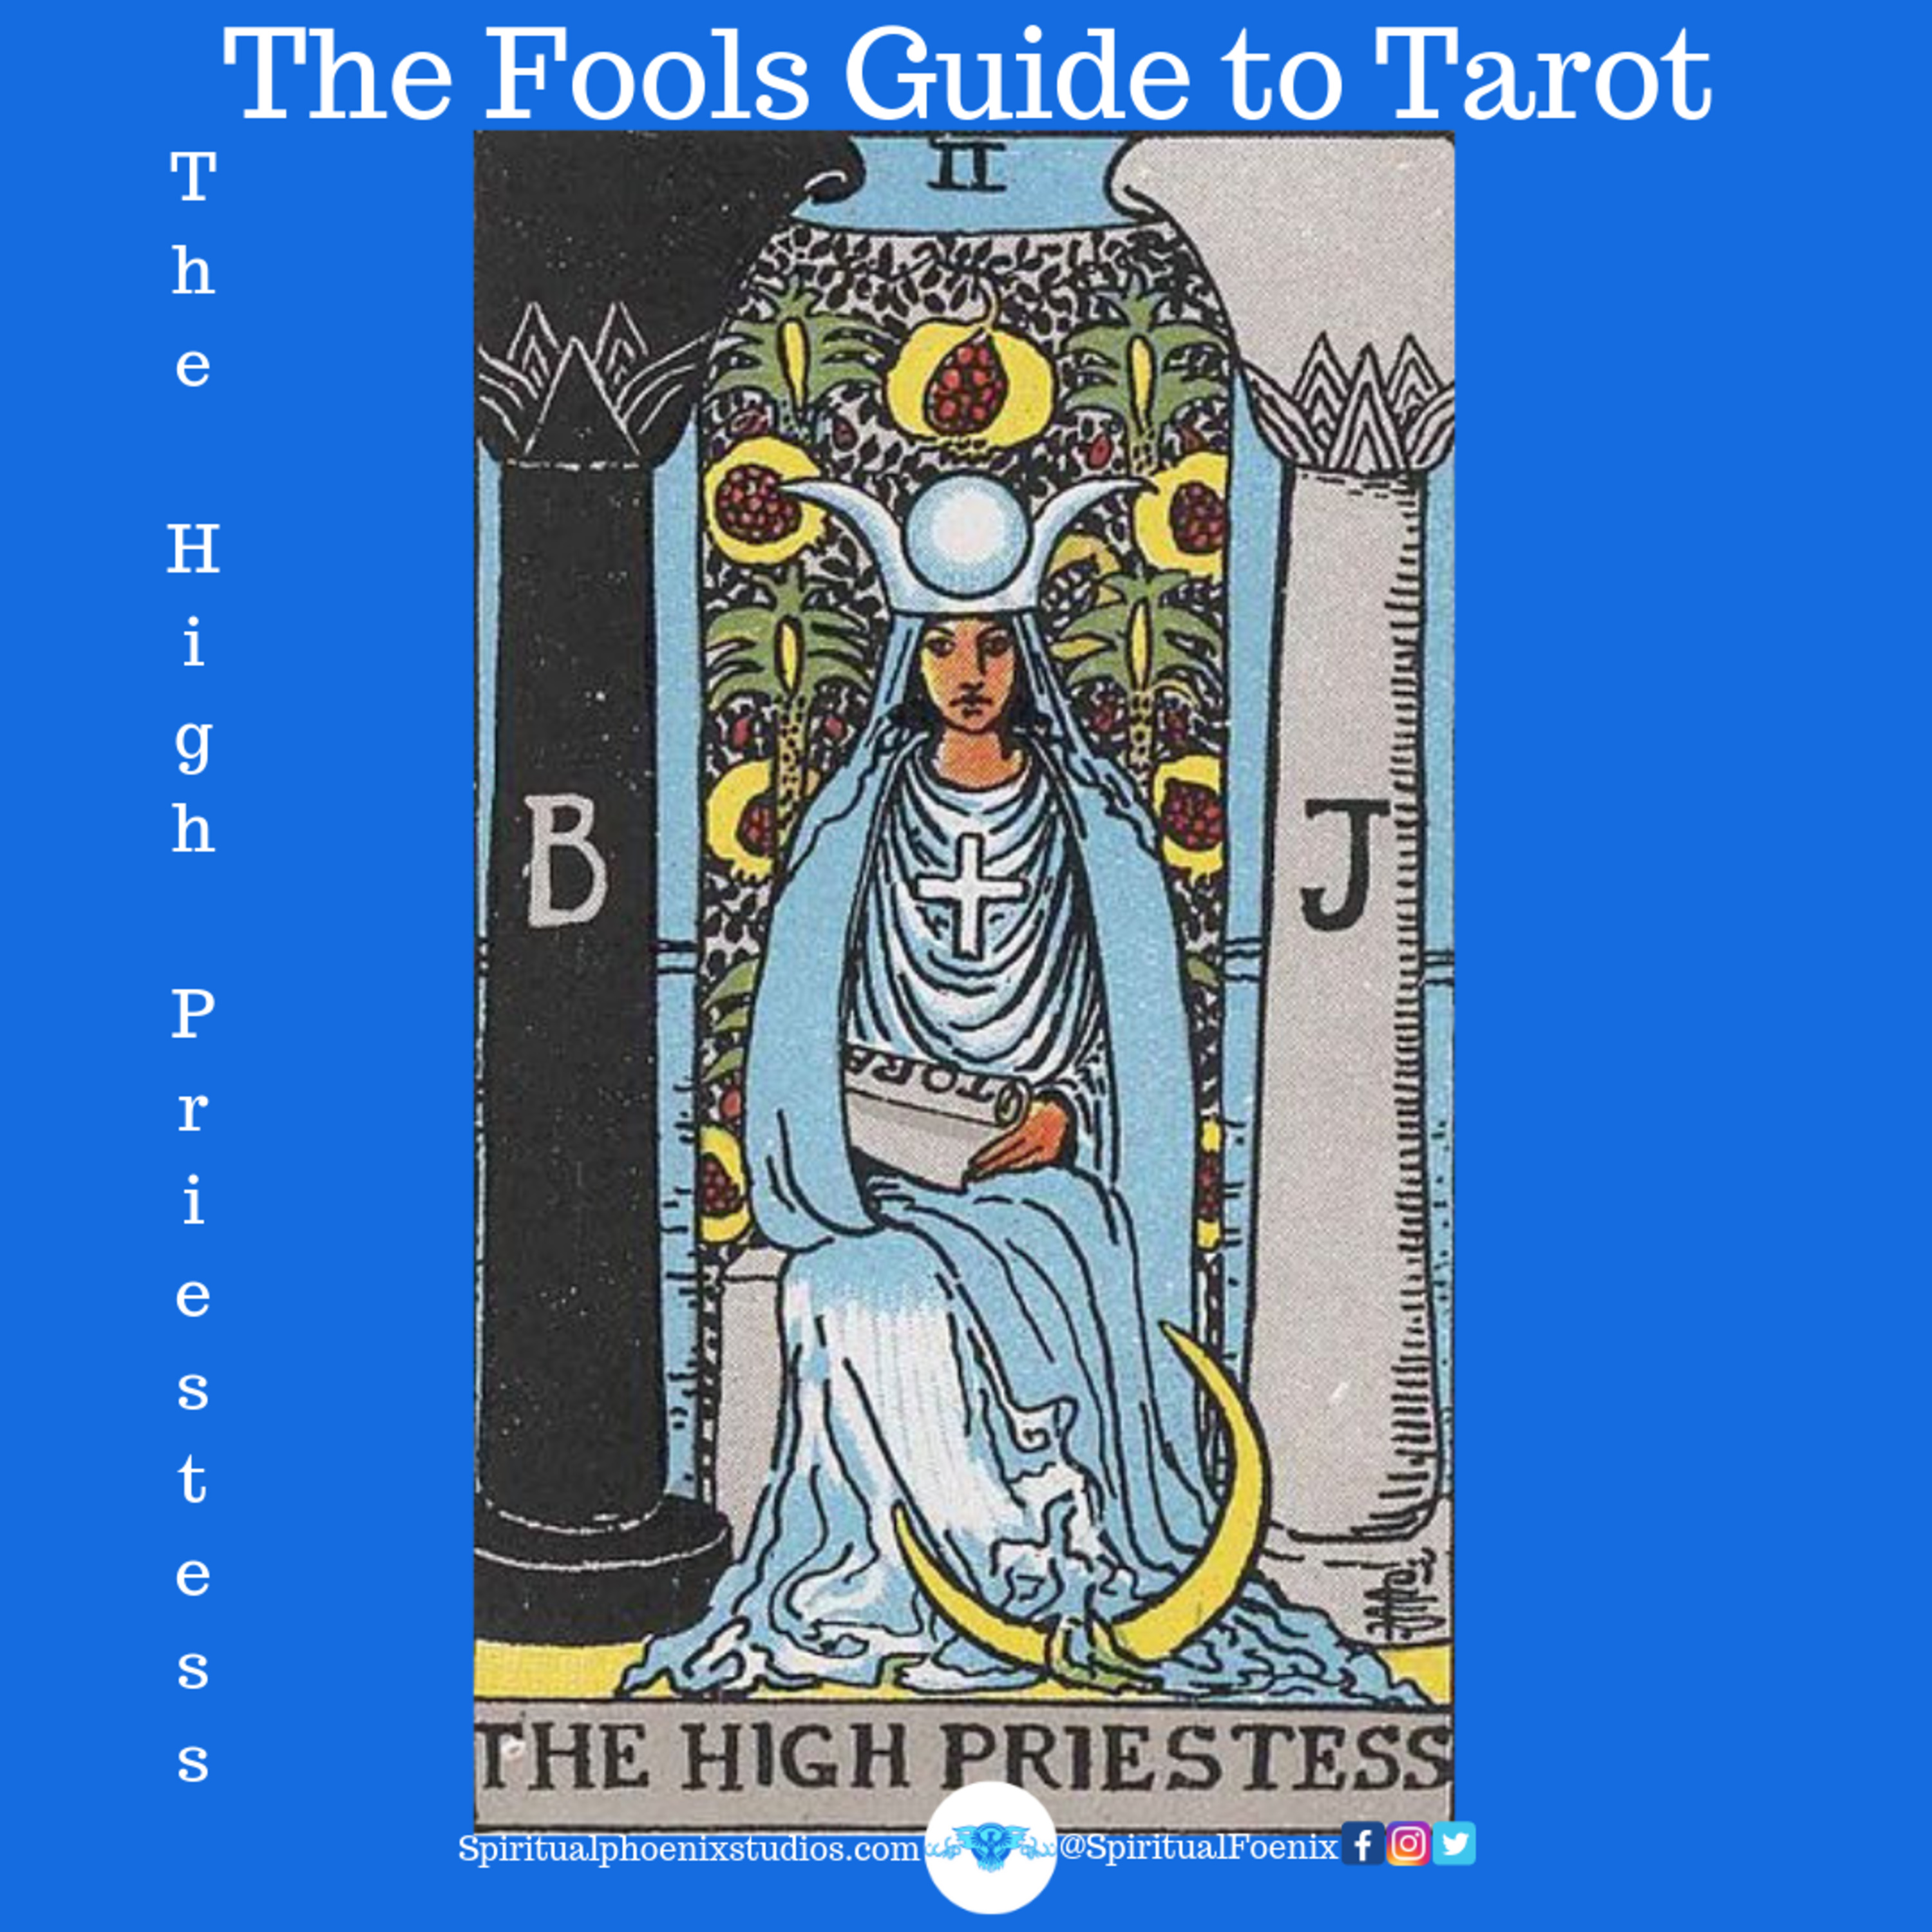 The fool's guide to tarot | How to read tarot cards | The High Priestess and 2s